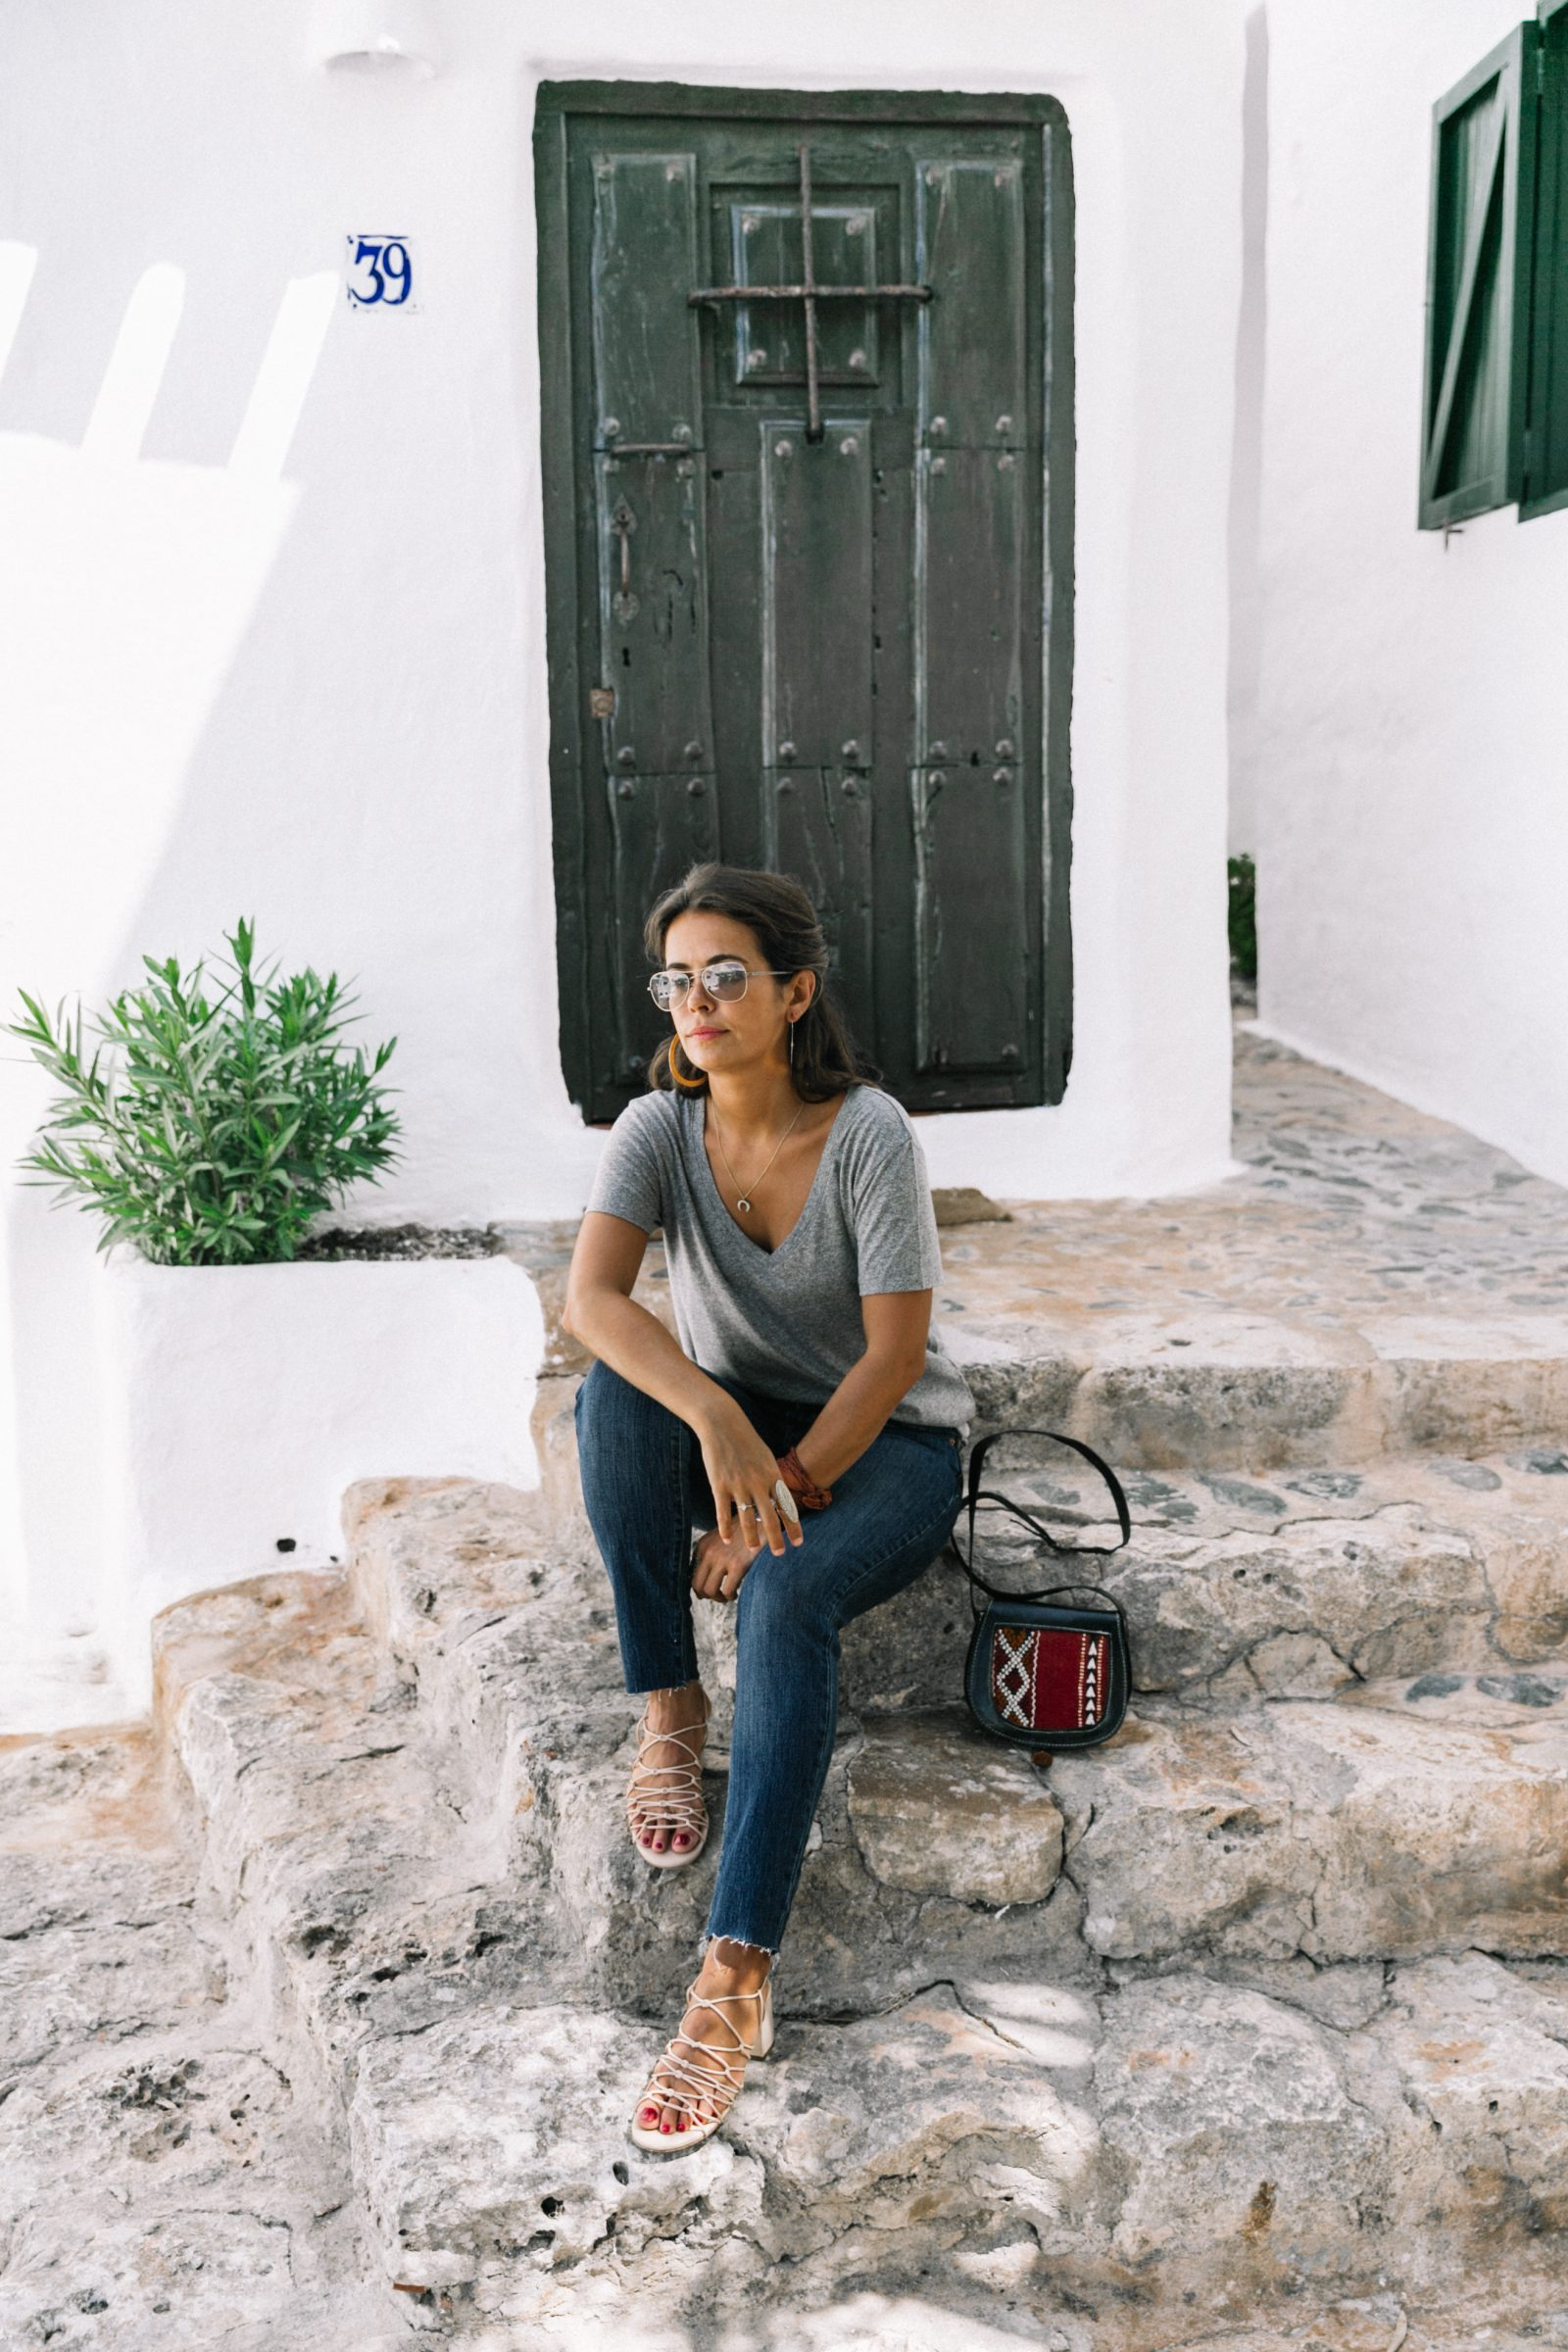 Live_in_Levis-Denim-Who_What_Wear-Levis-Denim-Double_Denim-Menorca-Street_Style-Collage_Vintage-7